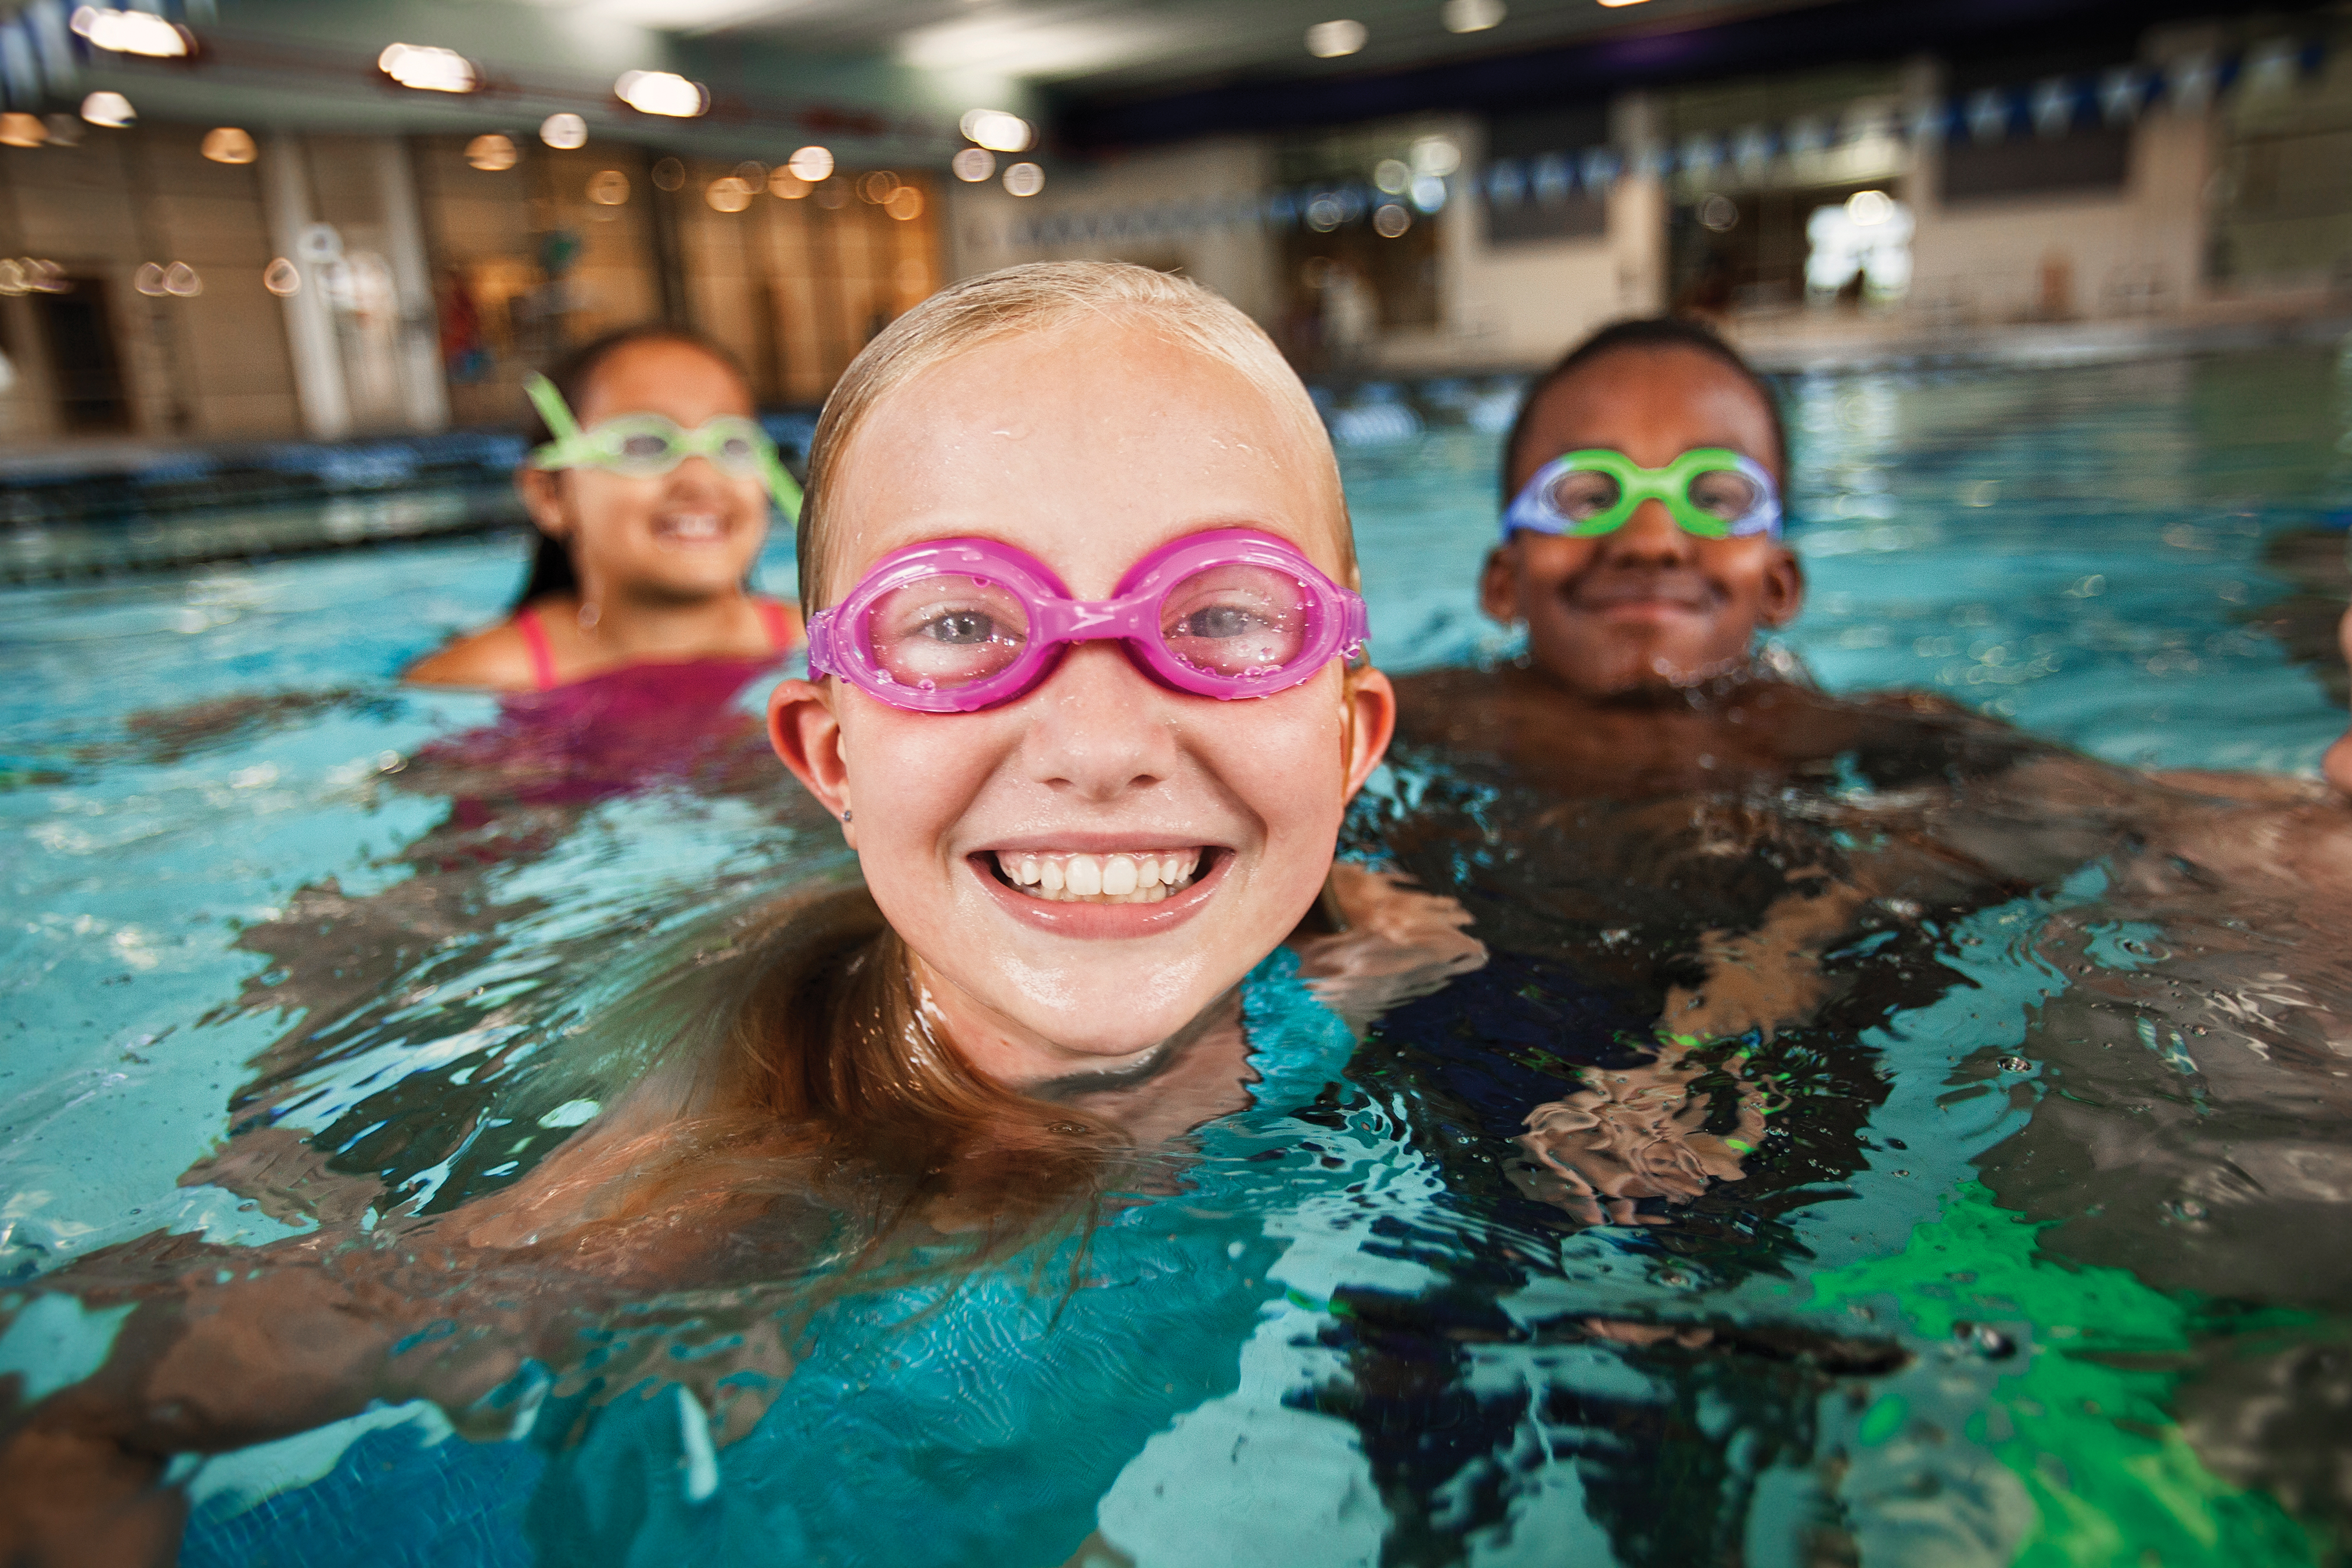 Princeton family ymca youth development healthy living for Garden city ymca pool schedule